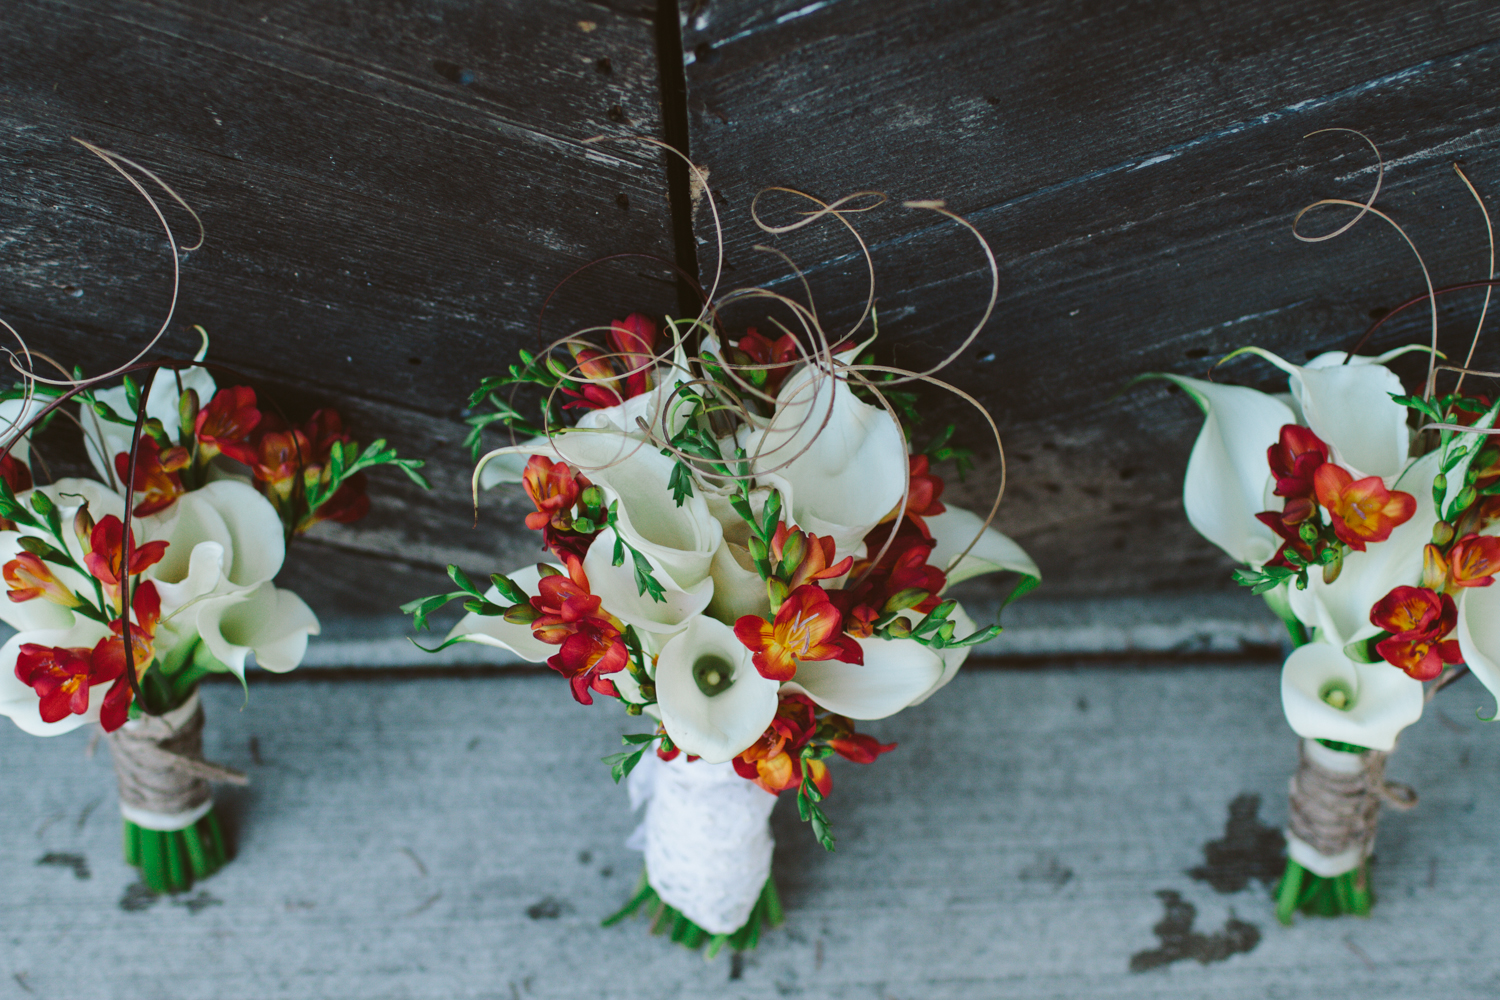 Jess Hunter Photography, Jessica Hunter, Seattle wedding photographer, washington state wedding photographer, rustic wedding, farm wedding, north florida wedding photographer, elopement photography, rustic wedding bouquet, rustic wedding flowers,